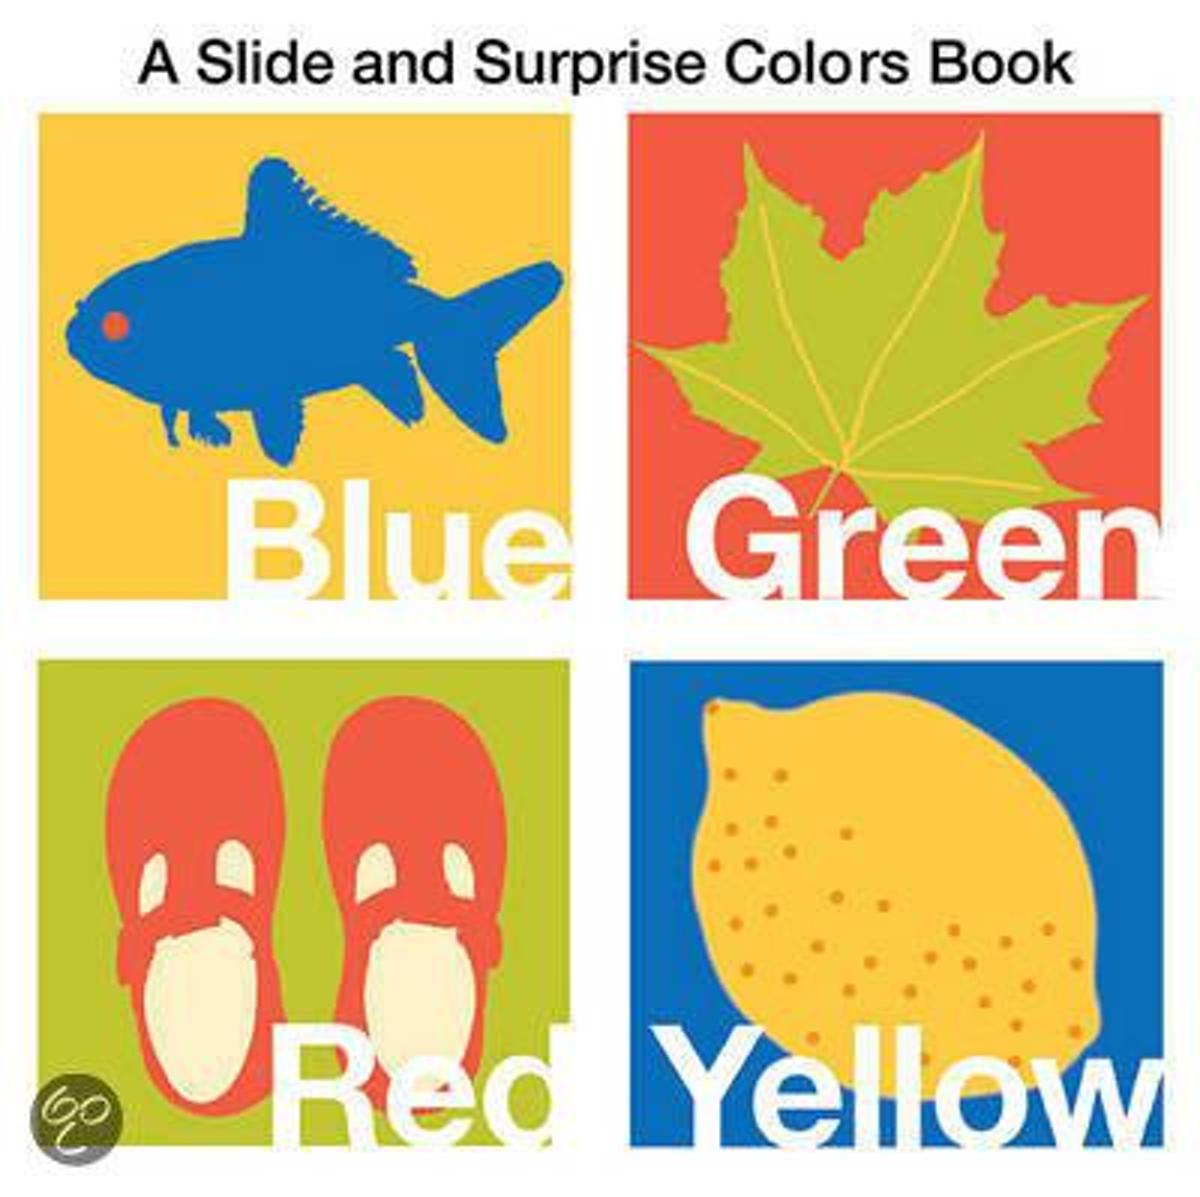 Slide and Surprise Colors